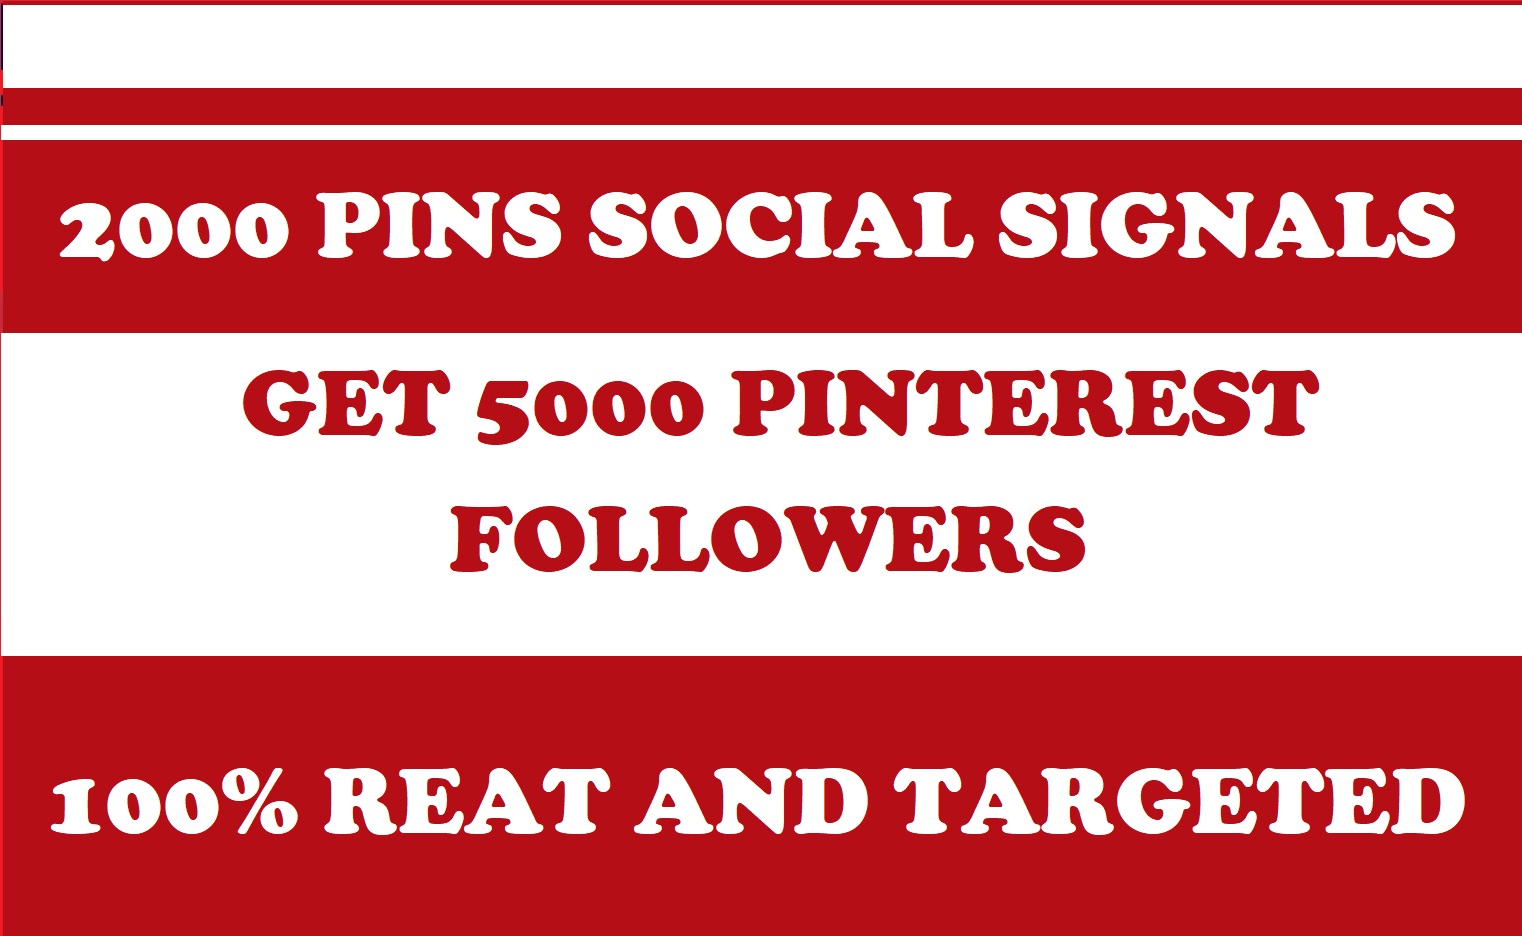 5000 Pinterest followers 2000 pin social signals manually